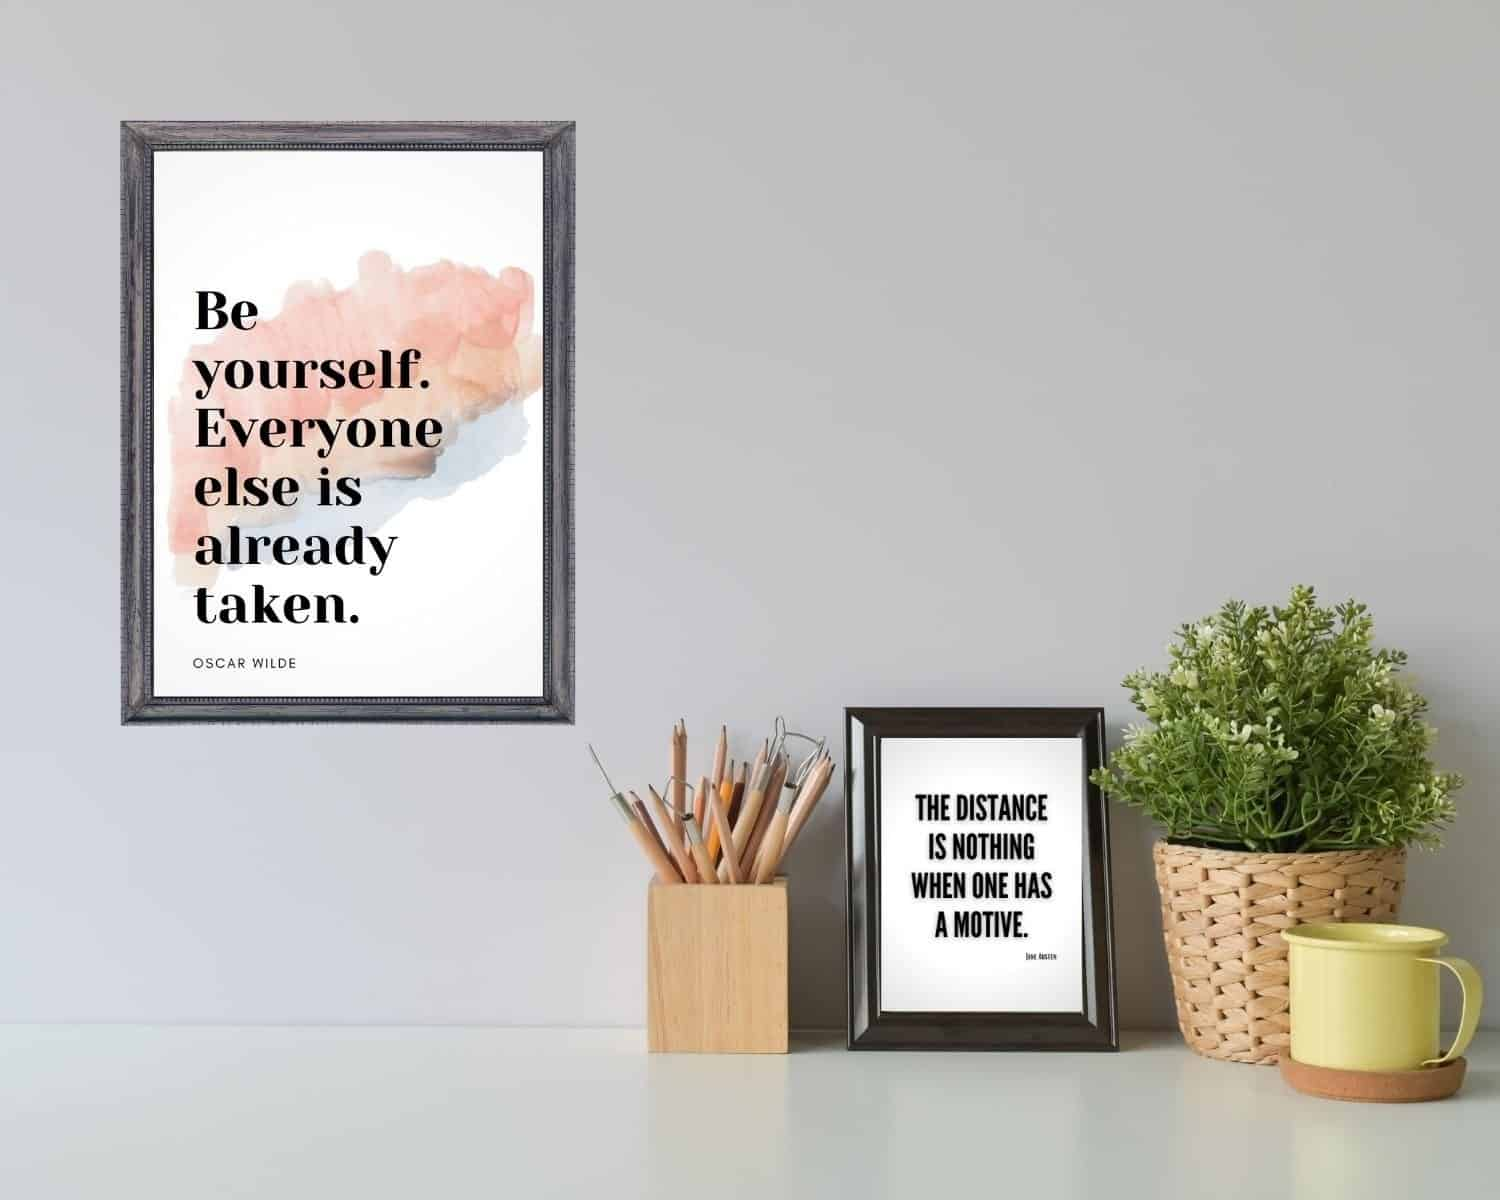 Inspirational Quote Art decorates a desk with a plant and mug